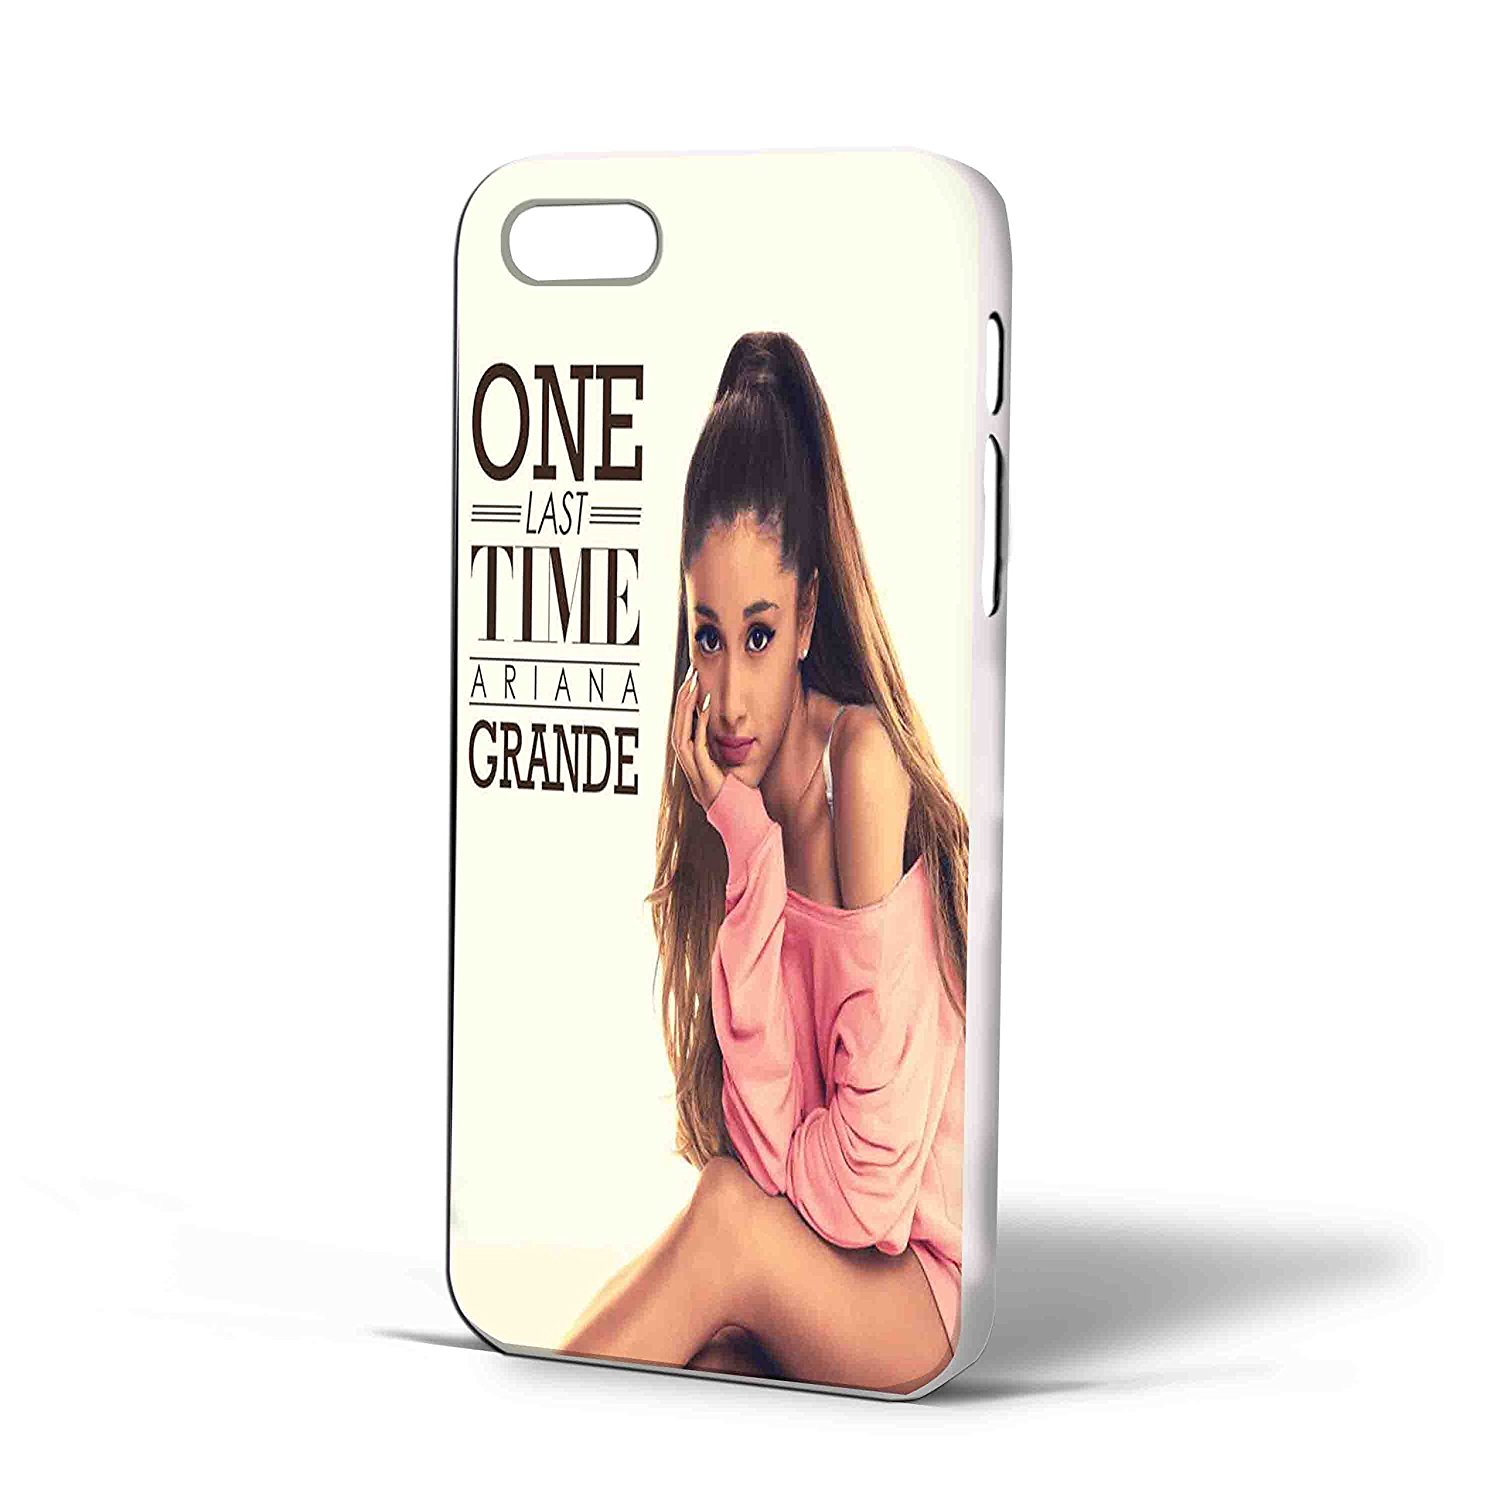 Ganma Ariana Grande One Last Time Case For iPhone Case (Case For iPhone 6s White)